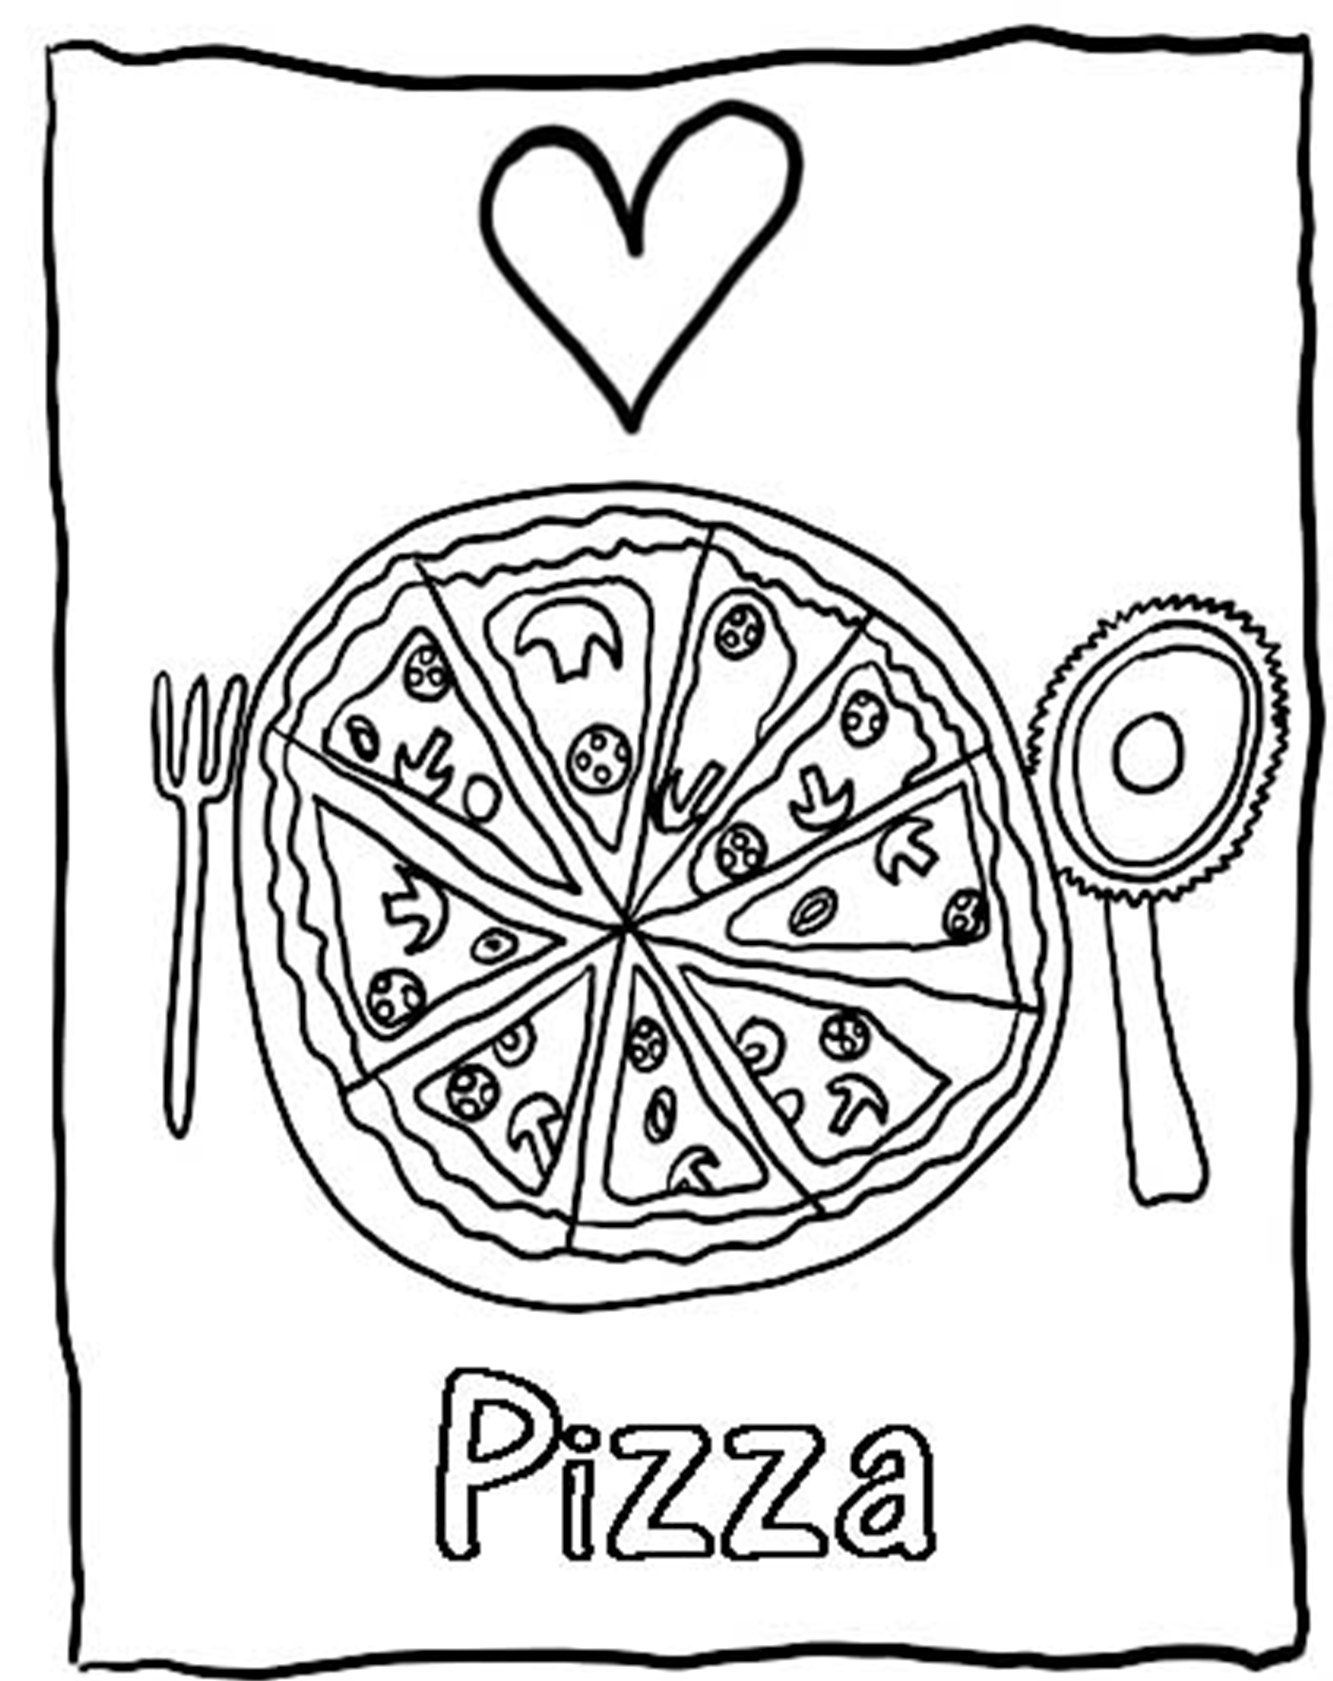 Pizza coloring sheet coloring home for Coloring pages of pizza